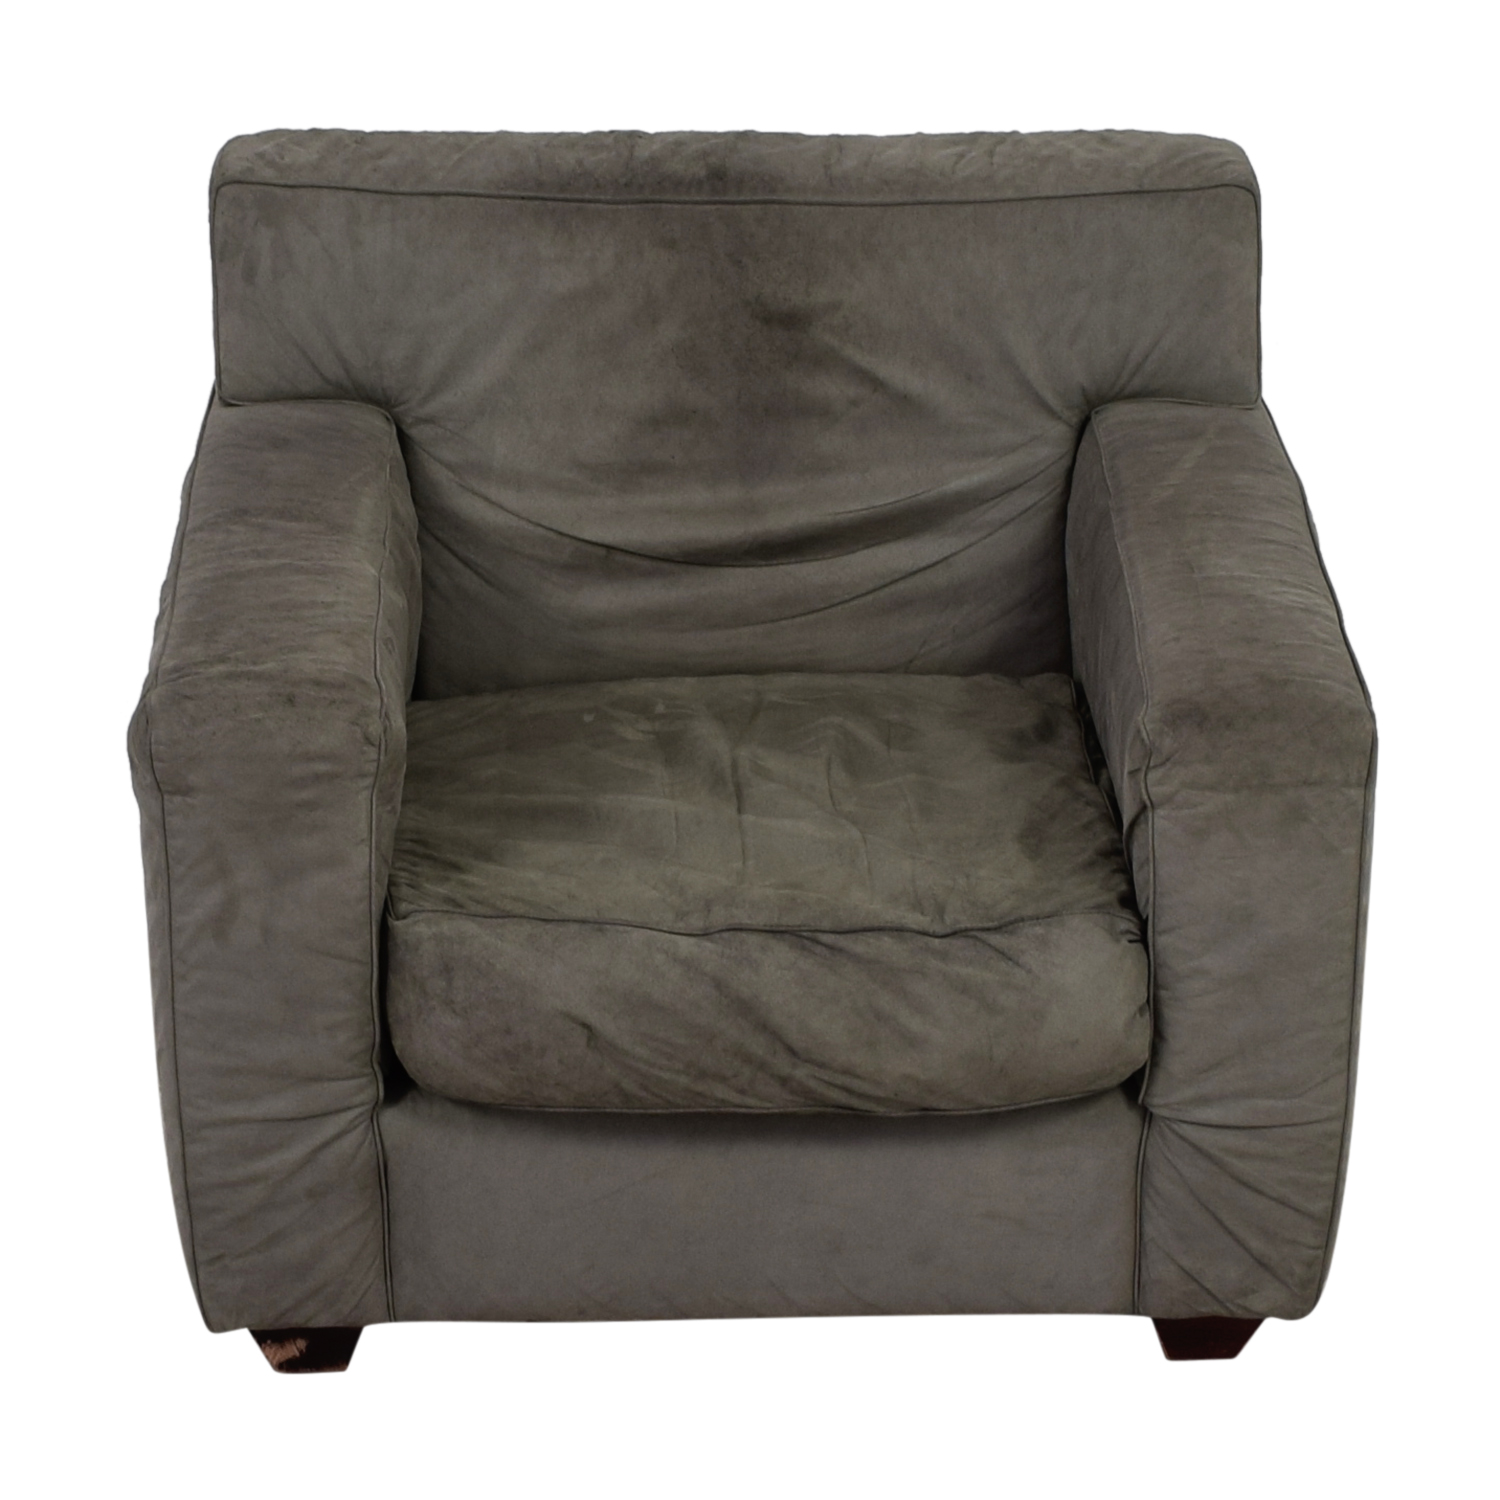 buy Palezetti 1930 Palezetti 1930 JM Frank Inspired Grey Club Chair online